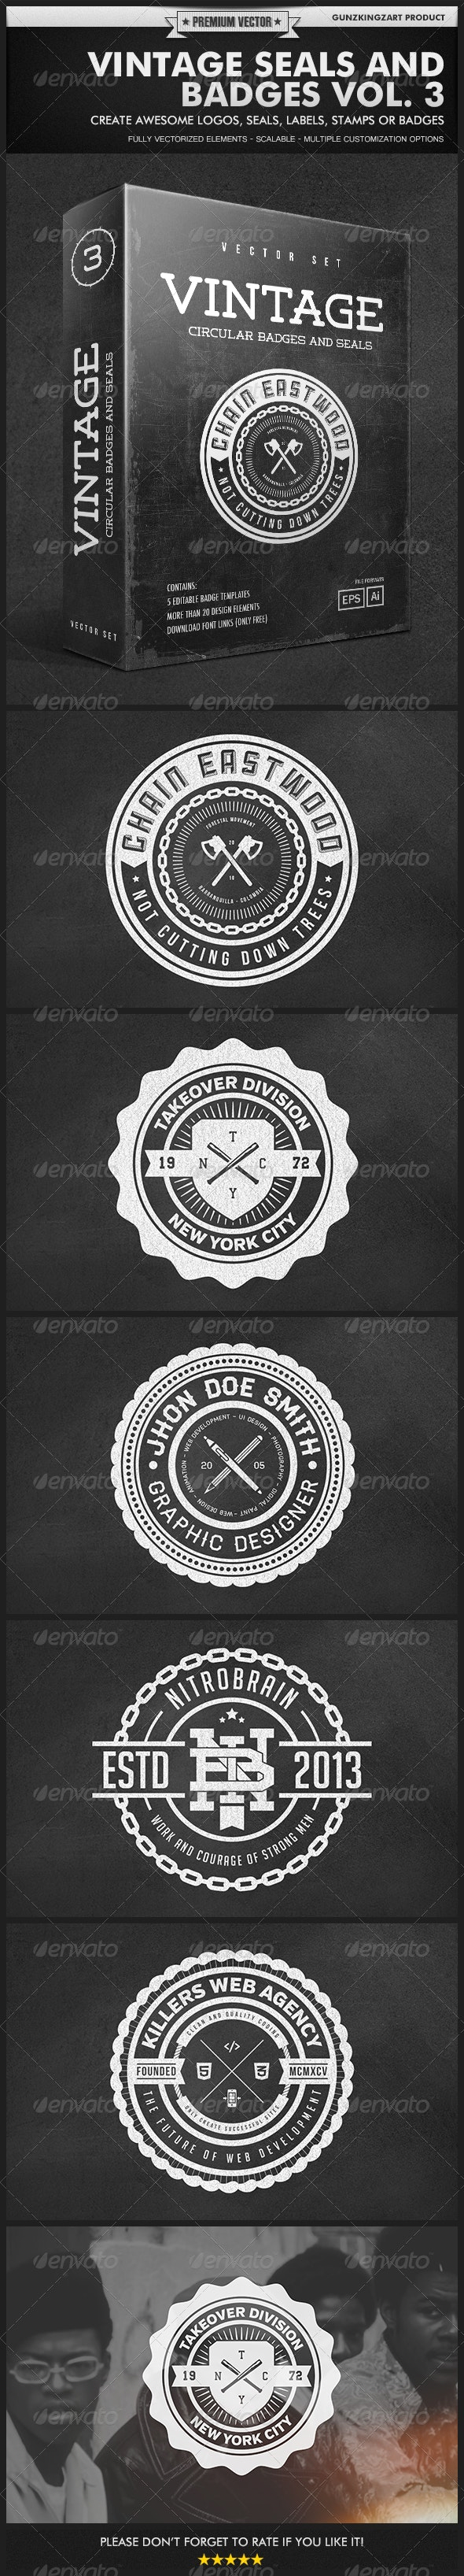 Vintage Seals and Badges Vol. 3 - Badges & Stickers Web Elements